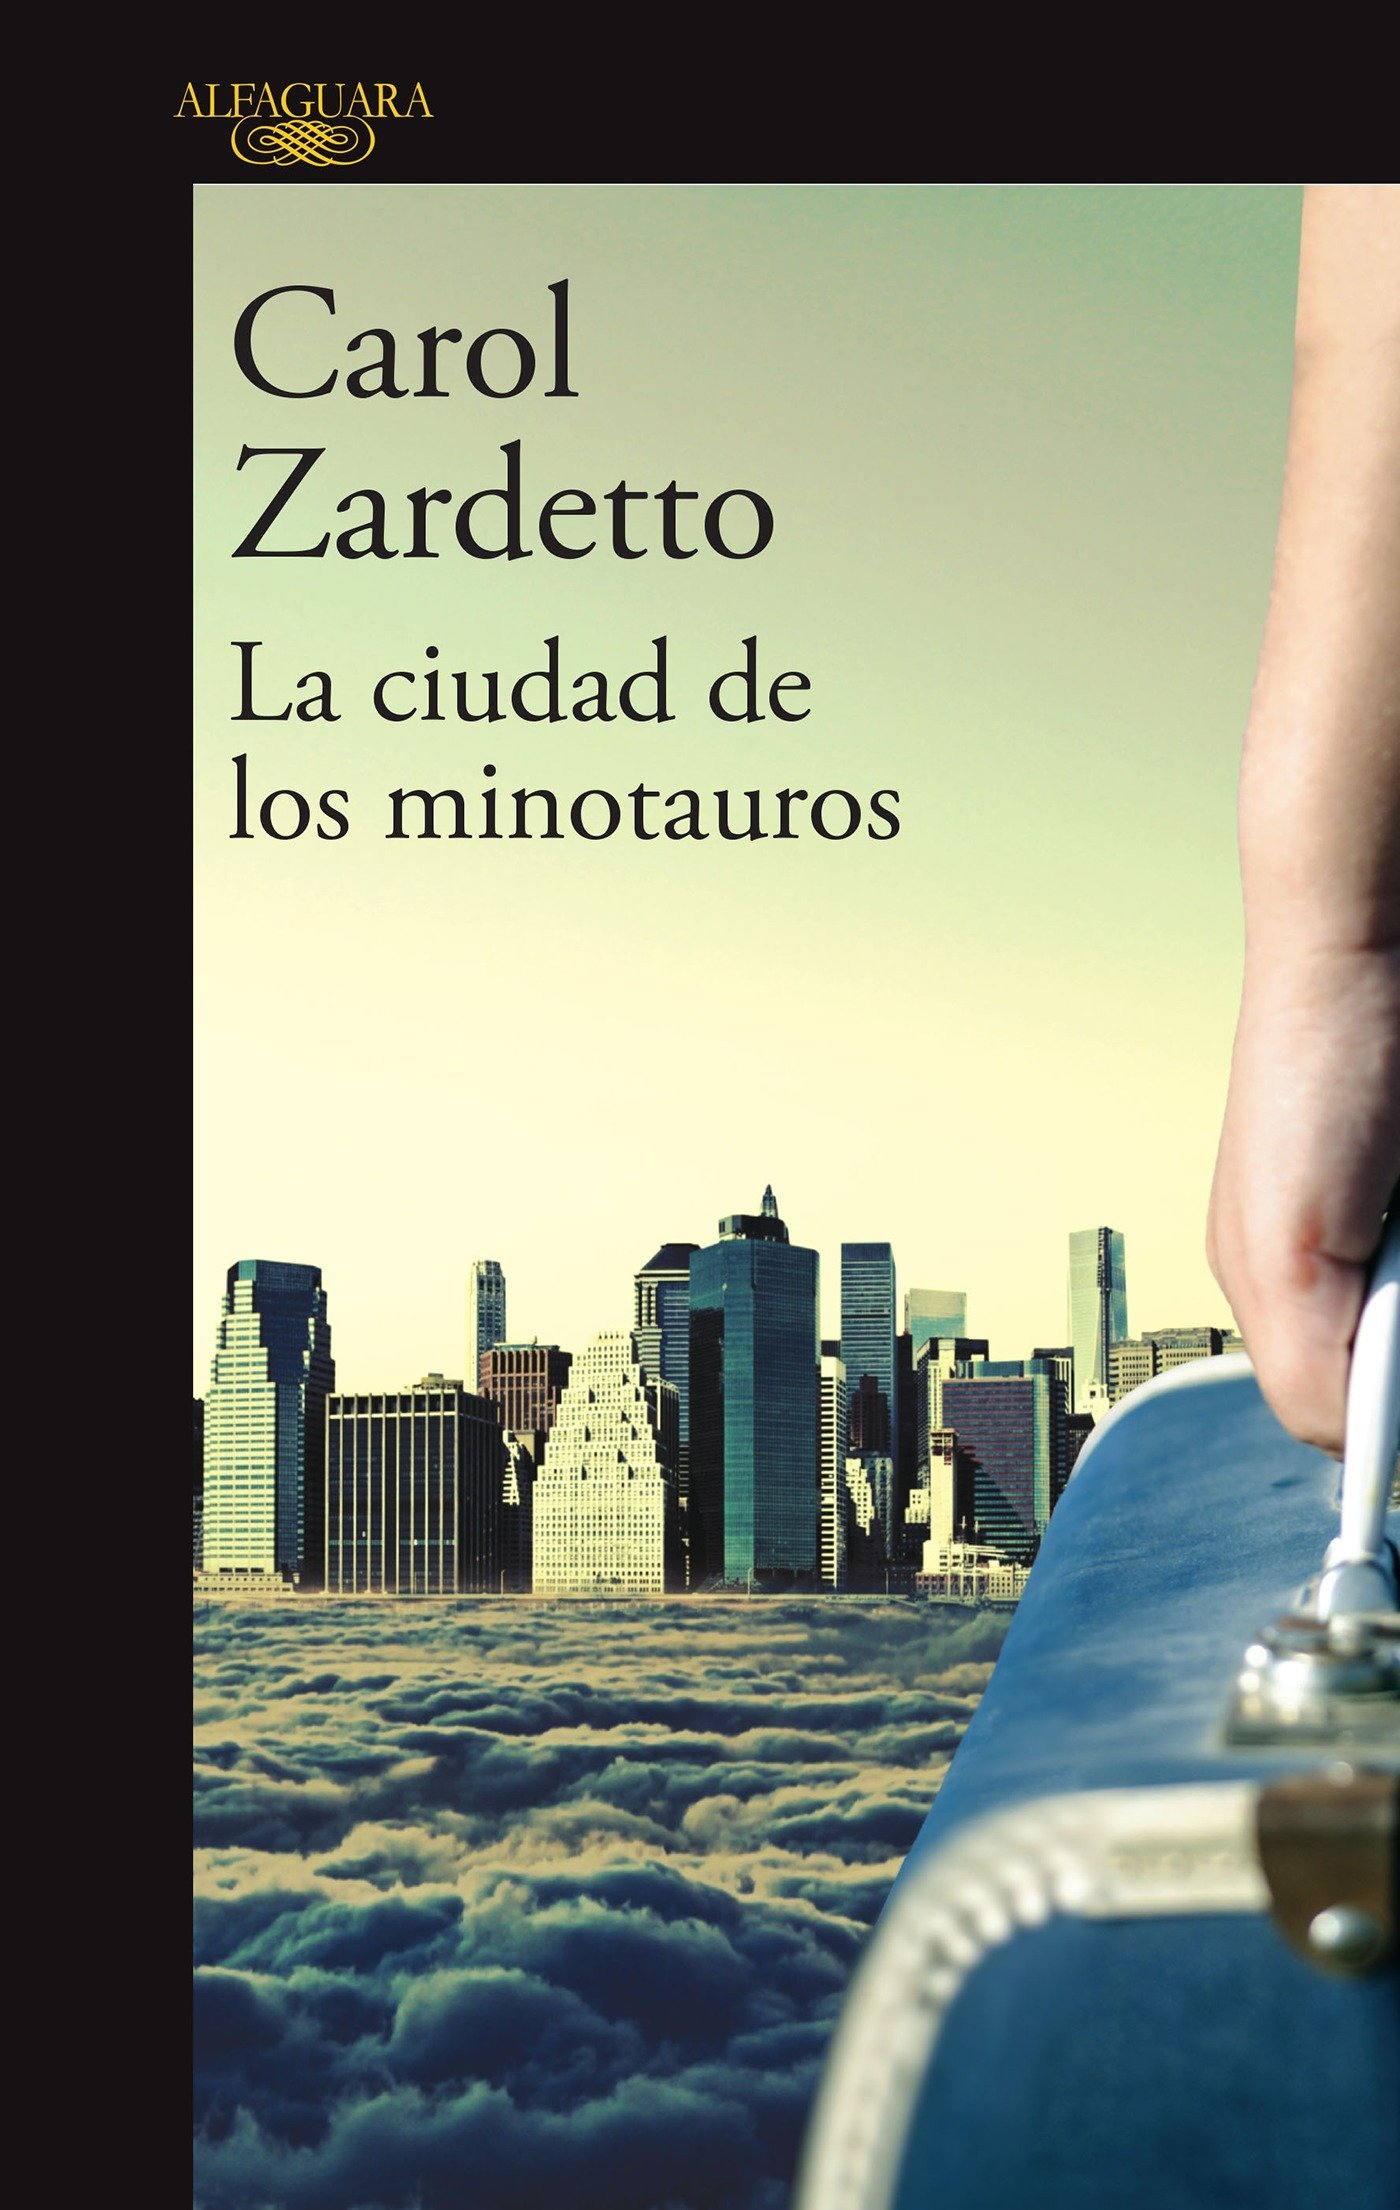 La ciudad de los minotauros / The City of Minotaurs (Spanish Edition) (Spanish) Paperback – July 26, 2016